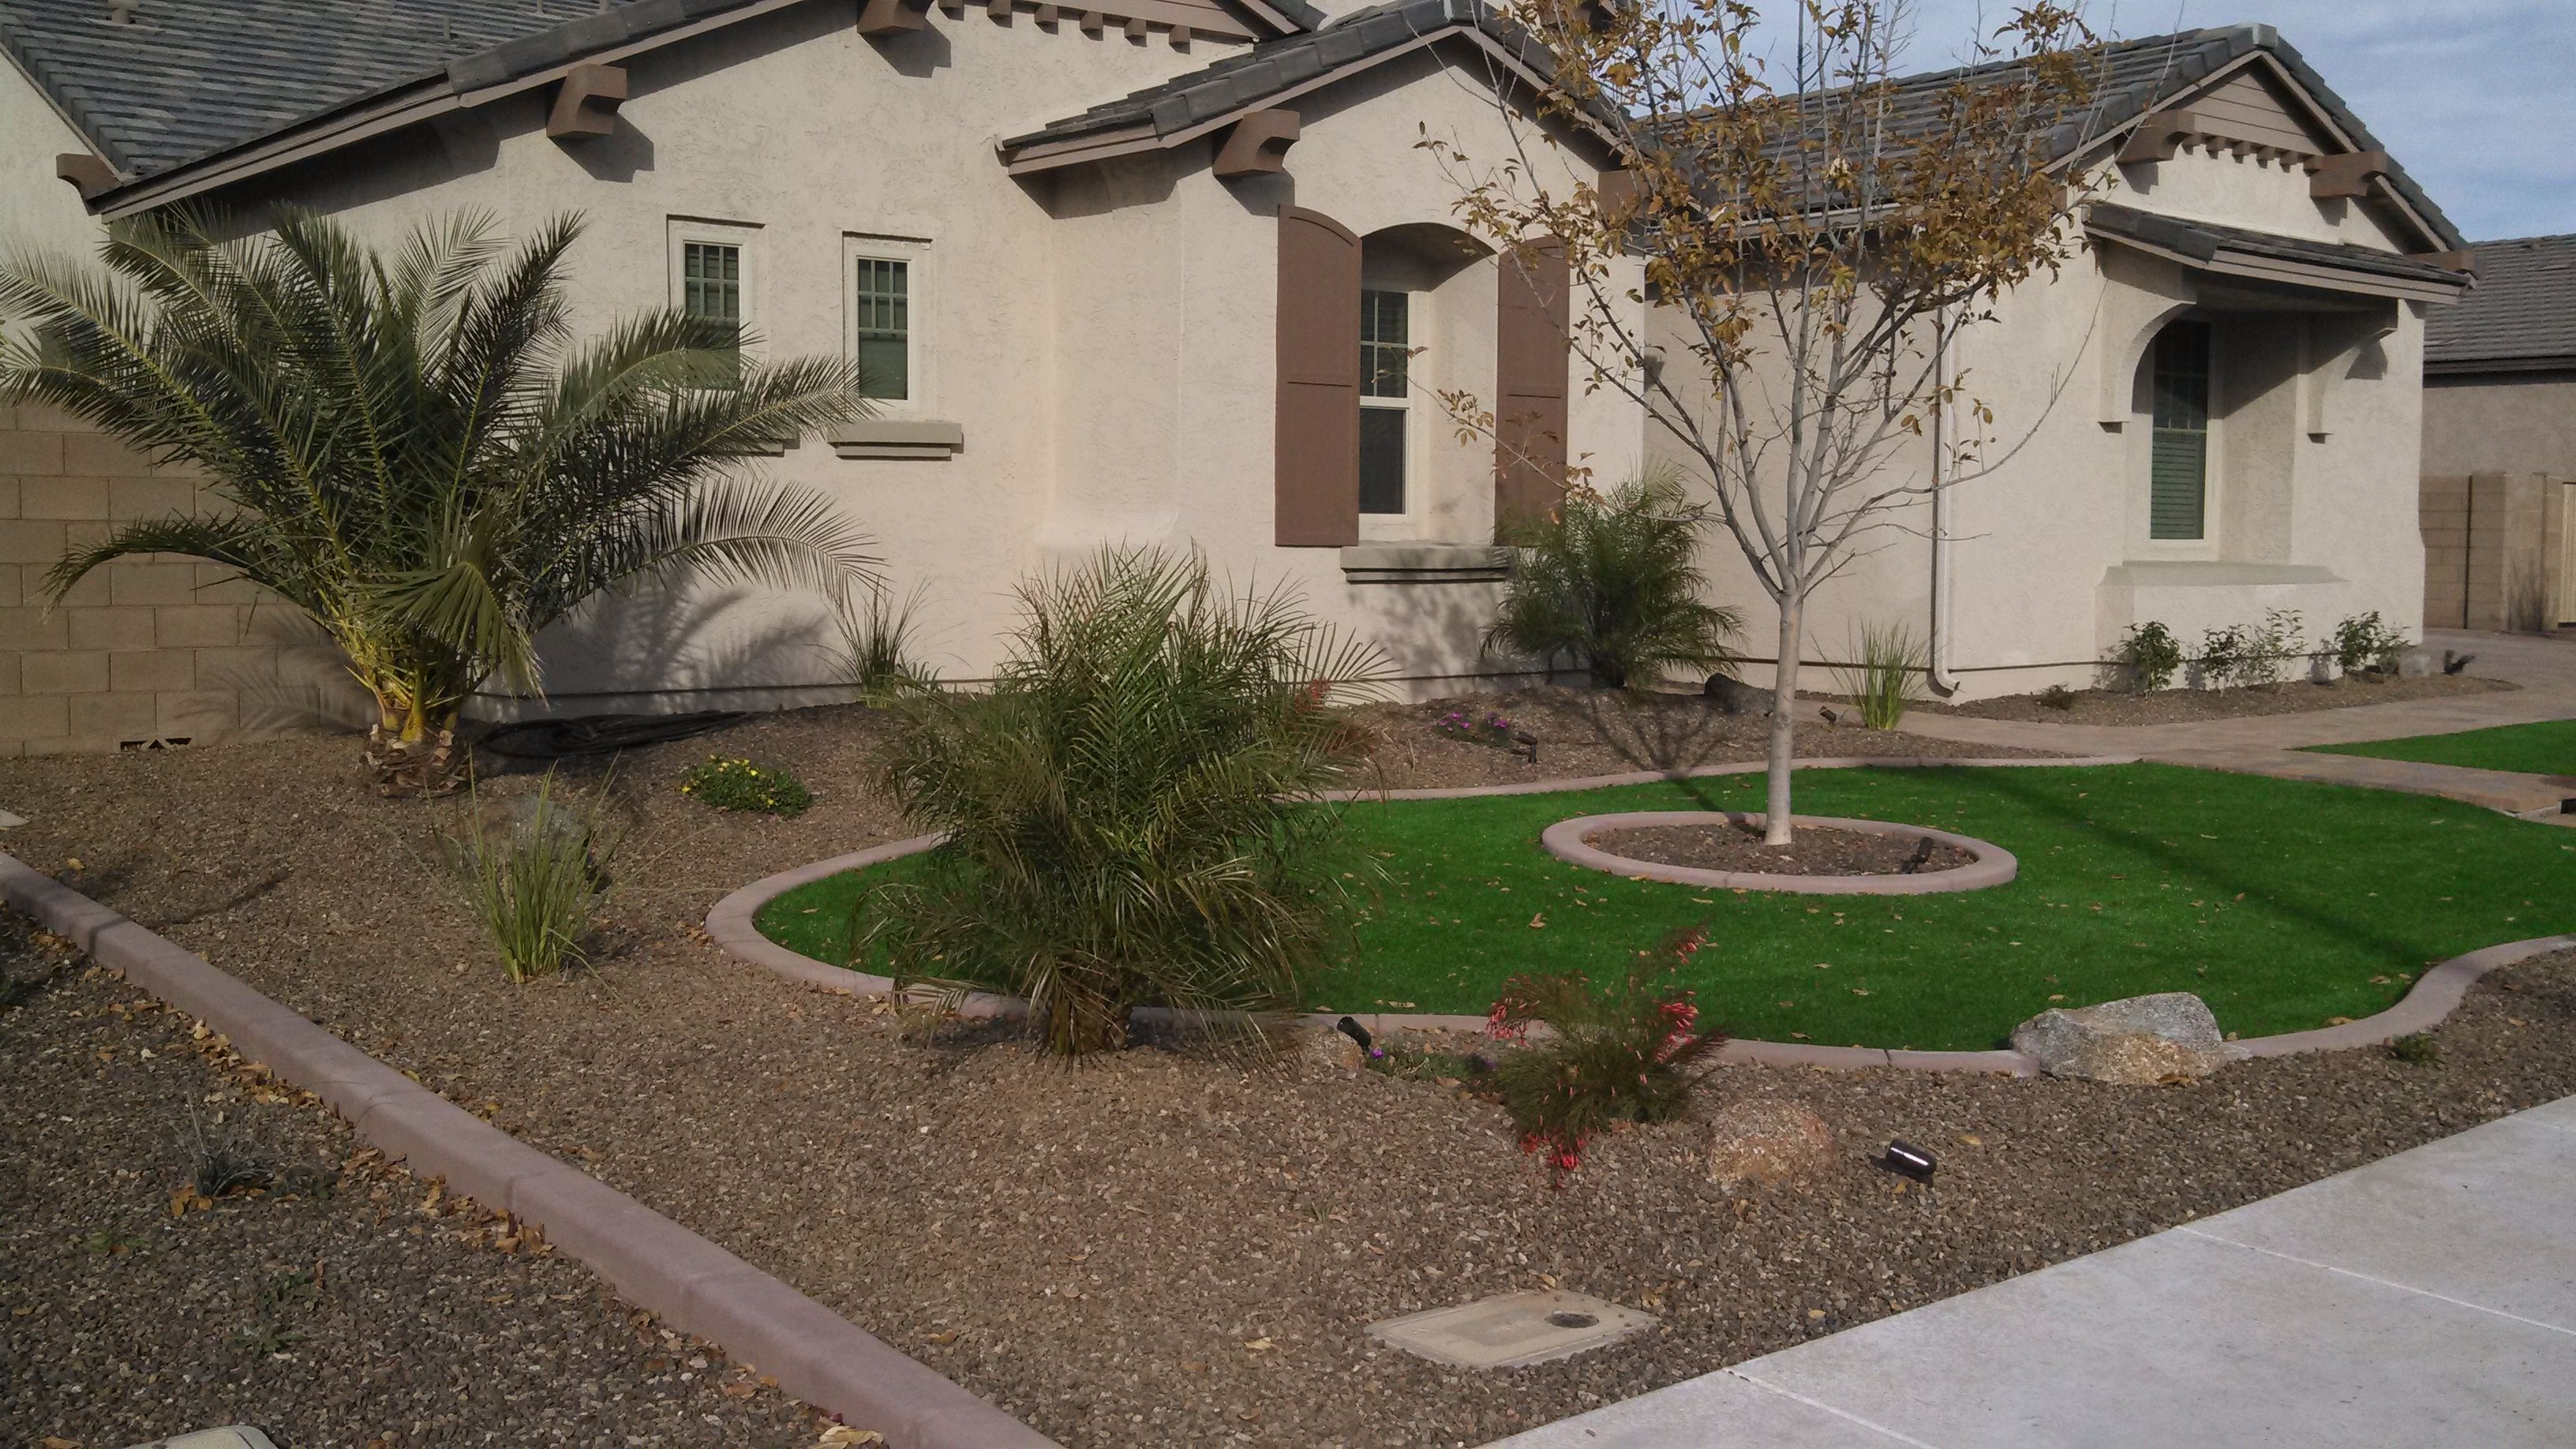 Desert Landscaping Ideas With Pavers And Artificial Turf Synthetic